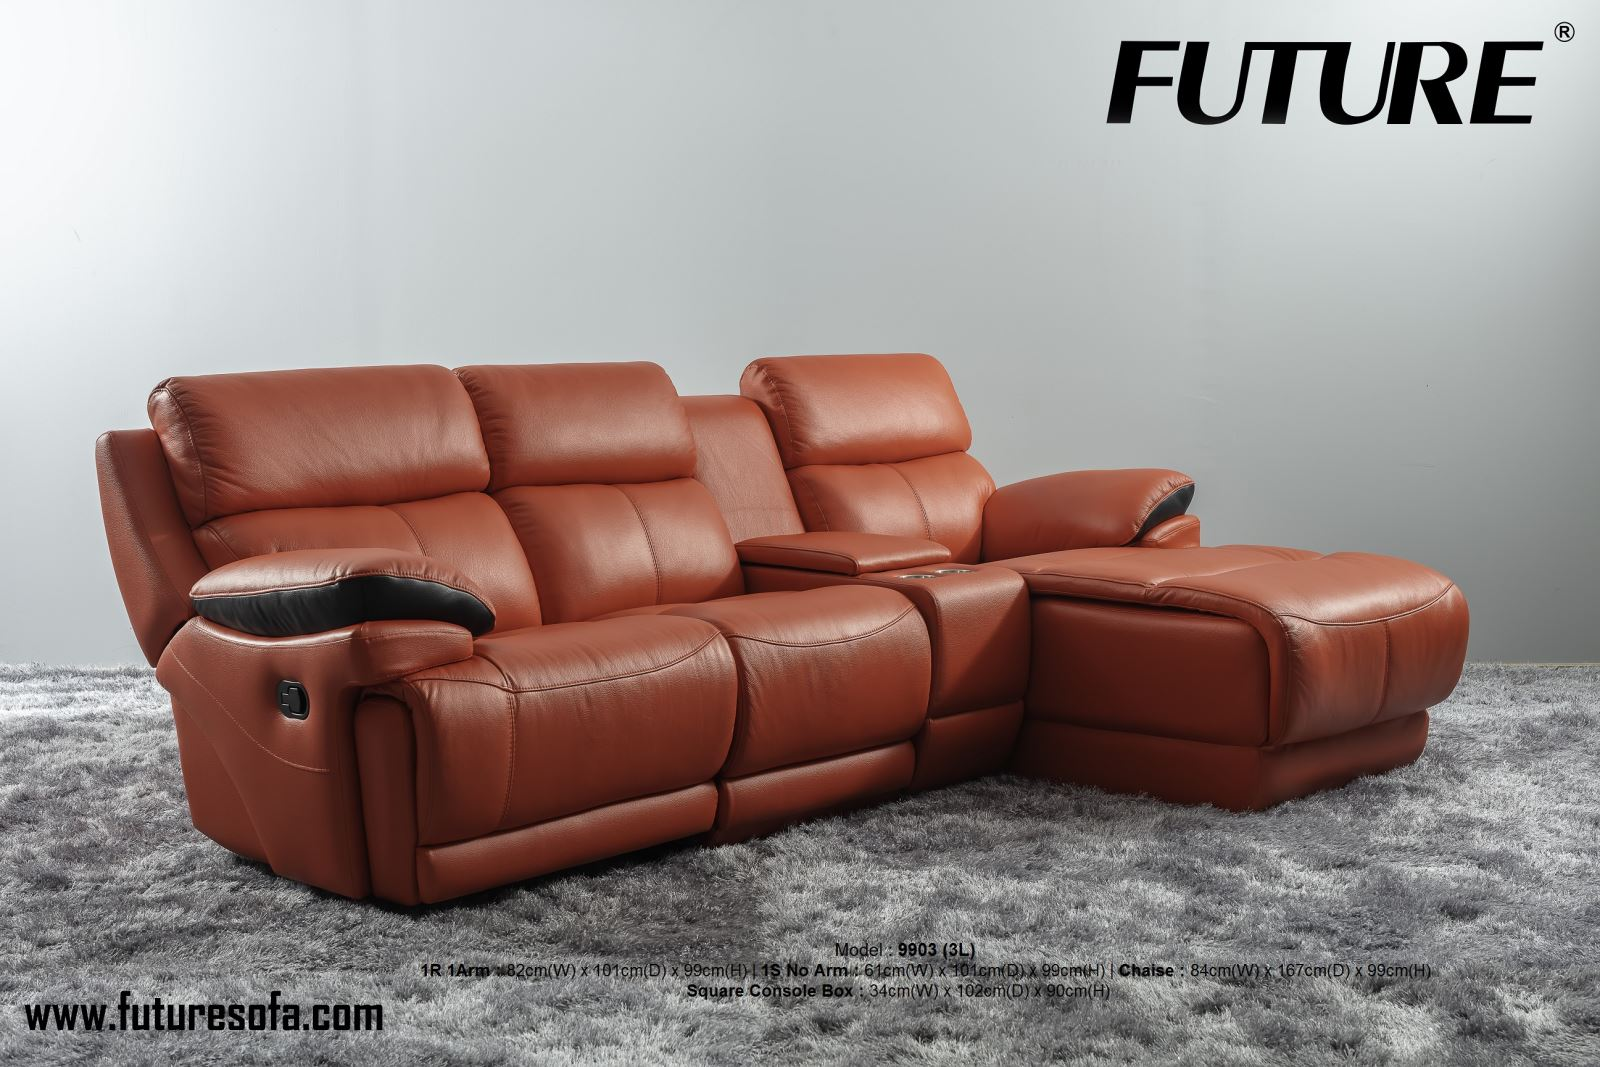 SOFA DA BÒ - FUTURE MODEL 9903 (3L)